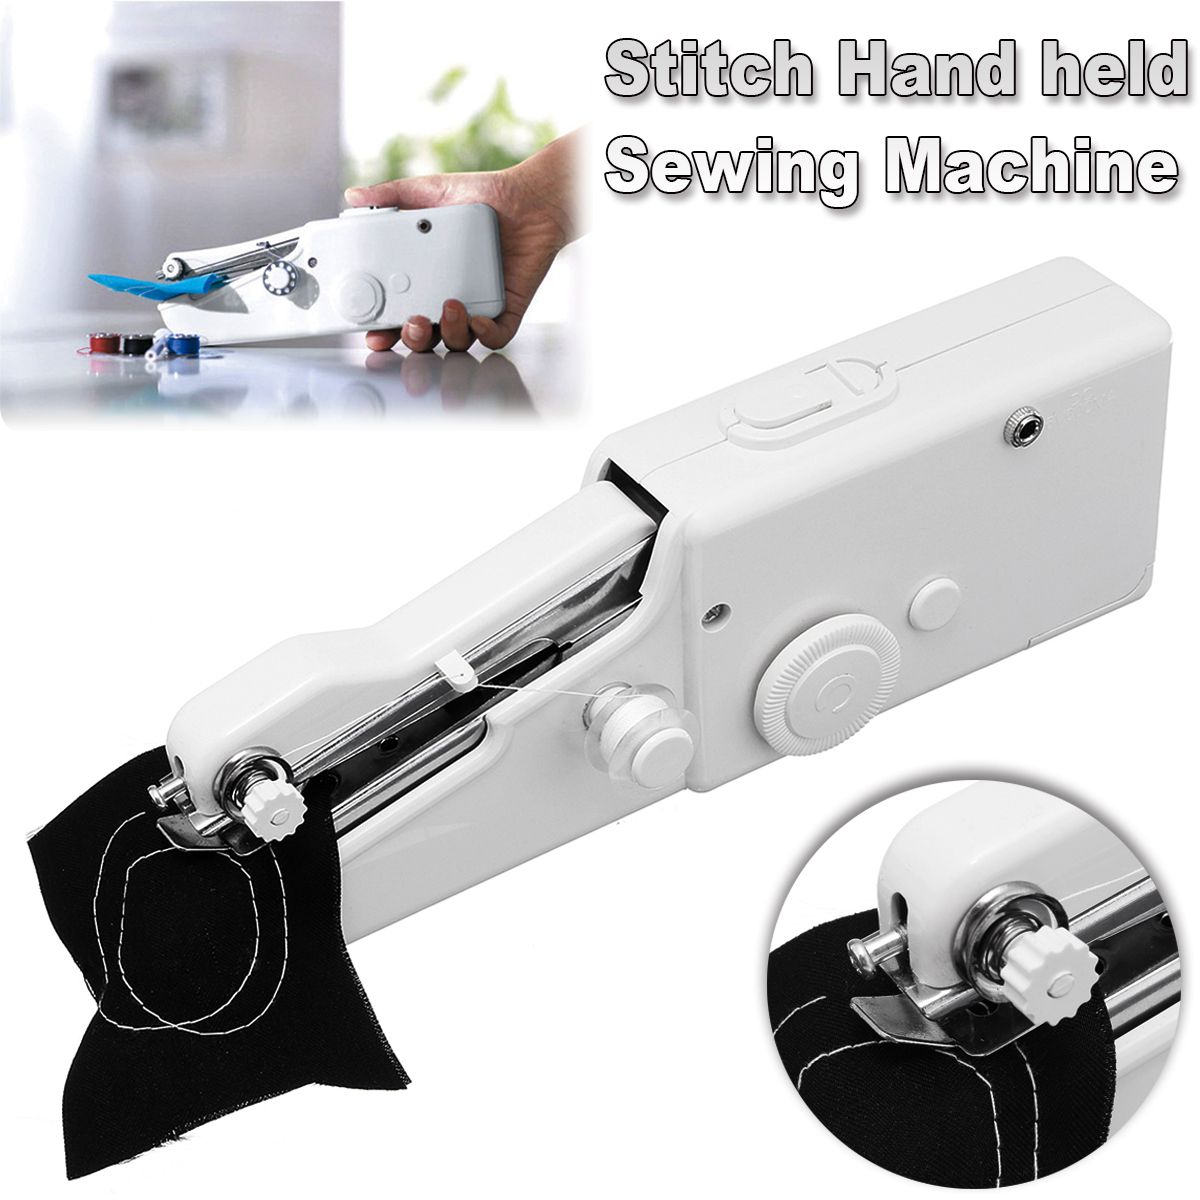 Handheld Stitch Sew Universal Cordless Handy Sewing Machine Quick Repair Tool Battery-Operated for DIY Clothing Denim Apparel Sewing Fabric Zippers Crafts Supplies (No batteries)